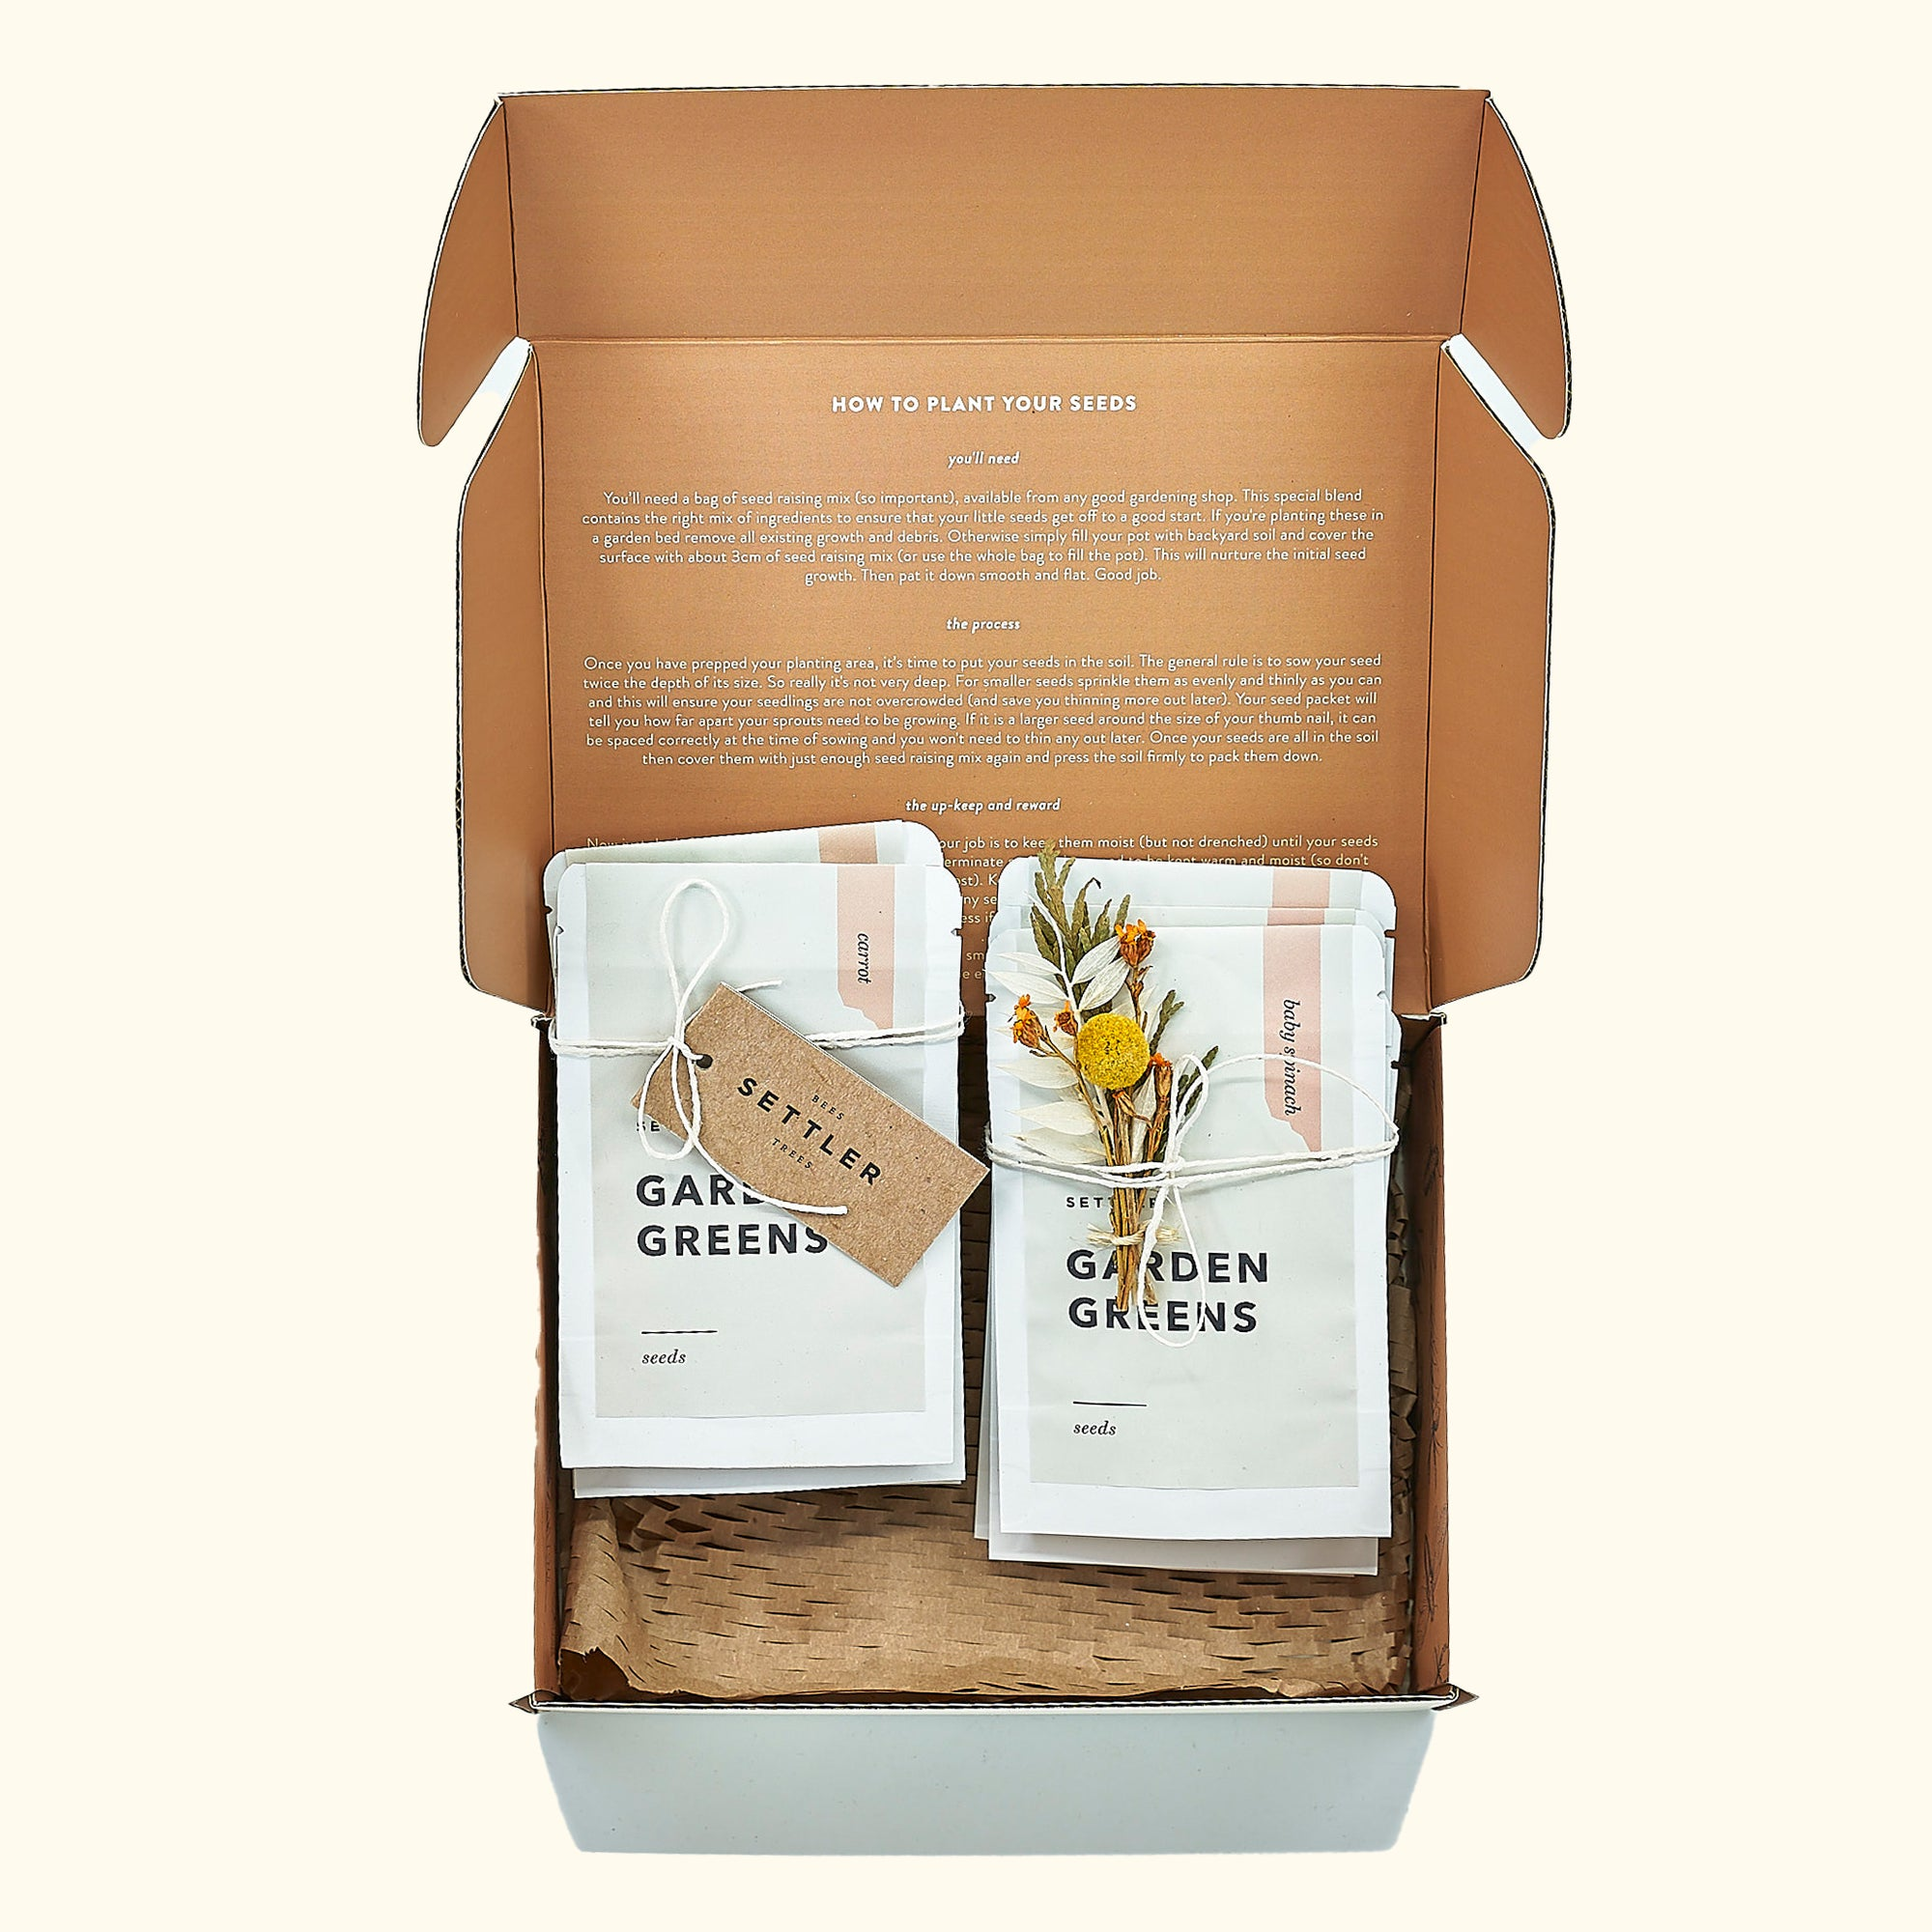 Settler Hives Garden Greens Pack